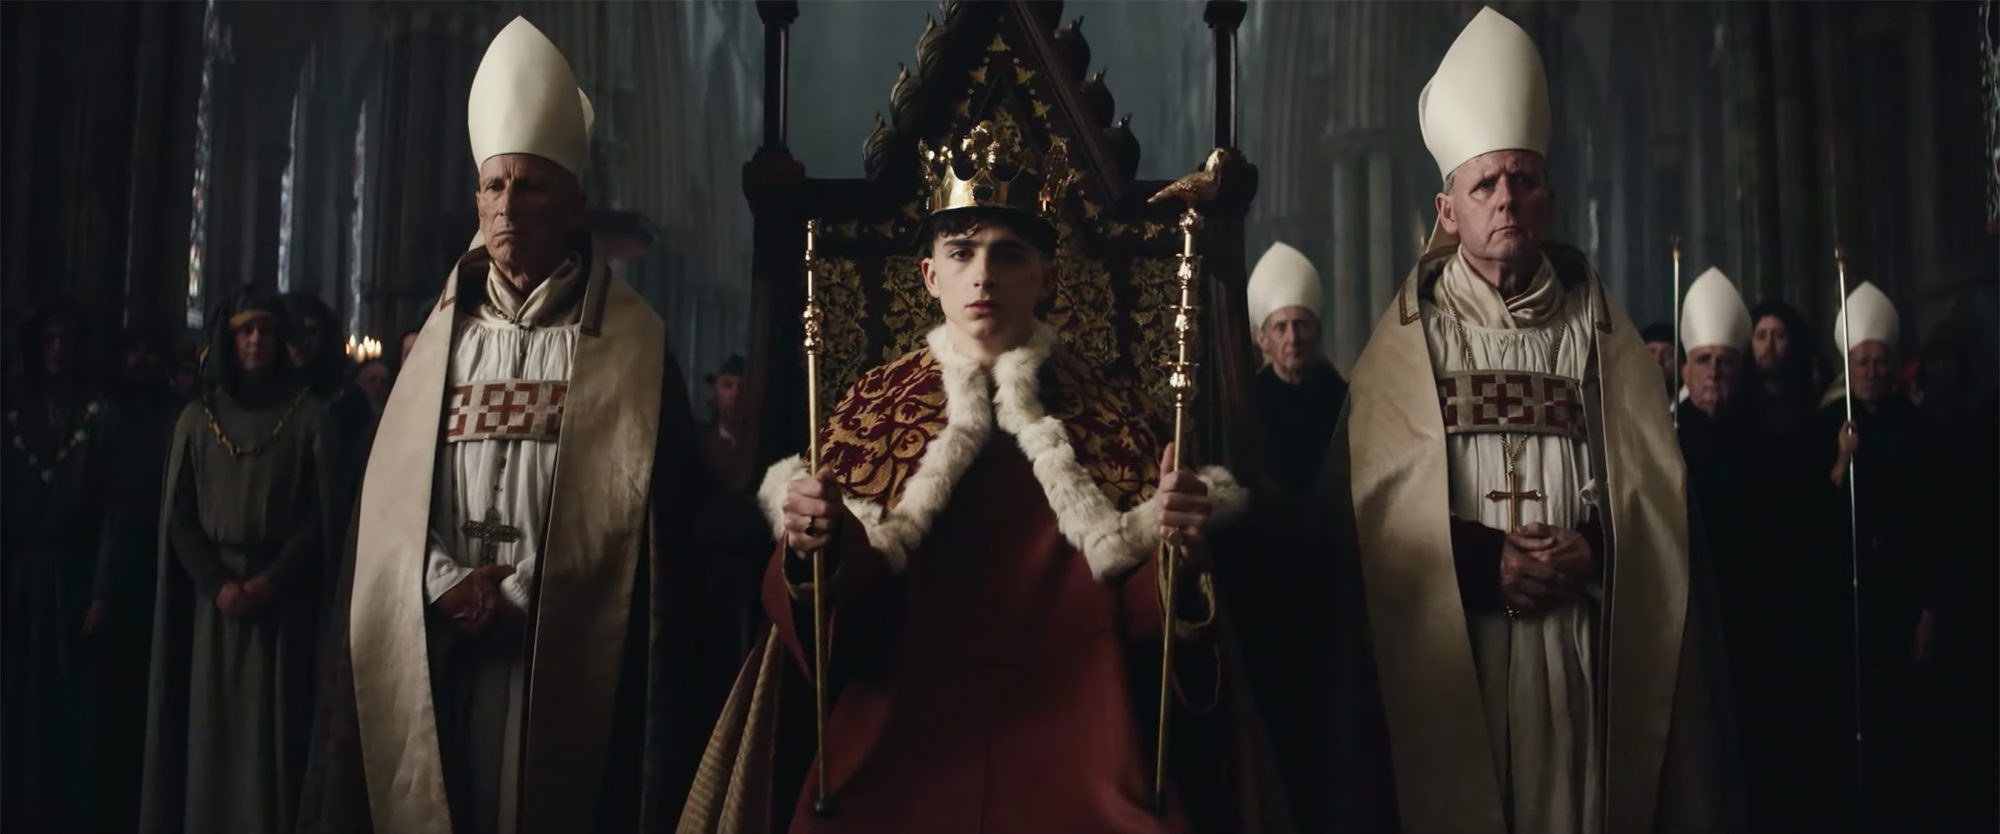 Timothee Chalamet - The King Netflix